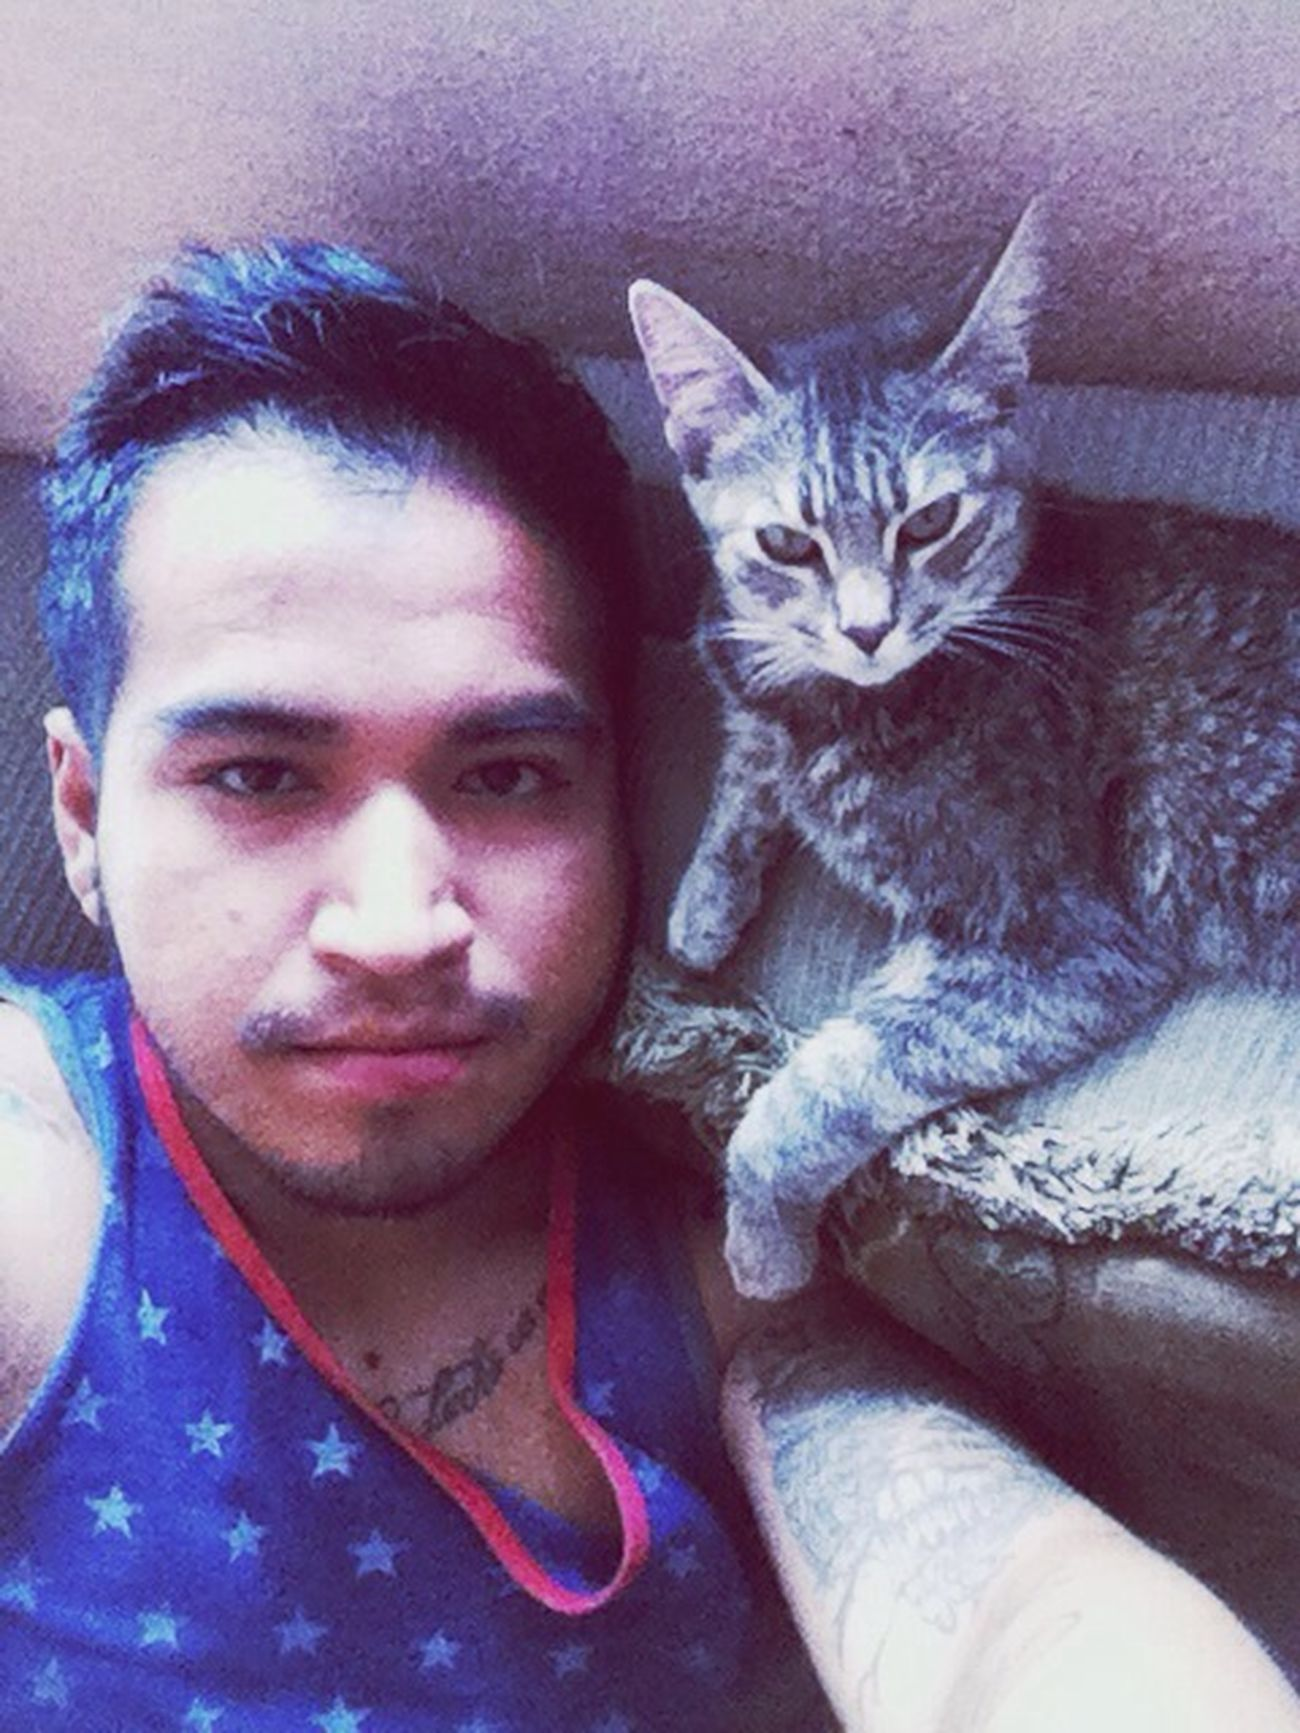 Thas't Me Handsome Man Beard And Tattoo Animals Cat♡ Miauuu I Love My Cat Rosa Beautiful People